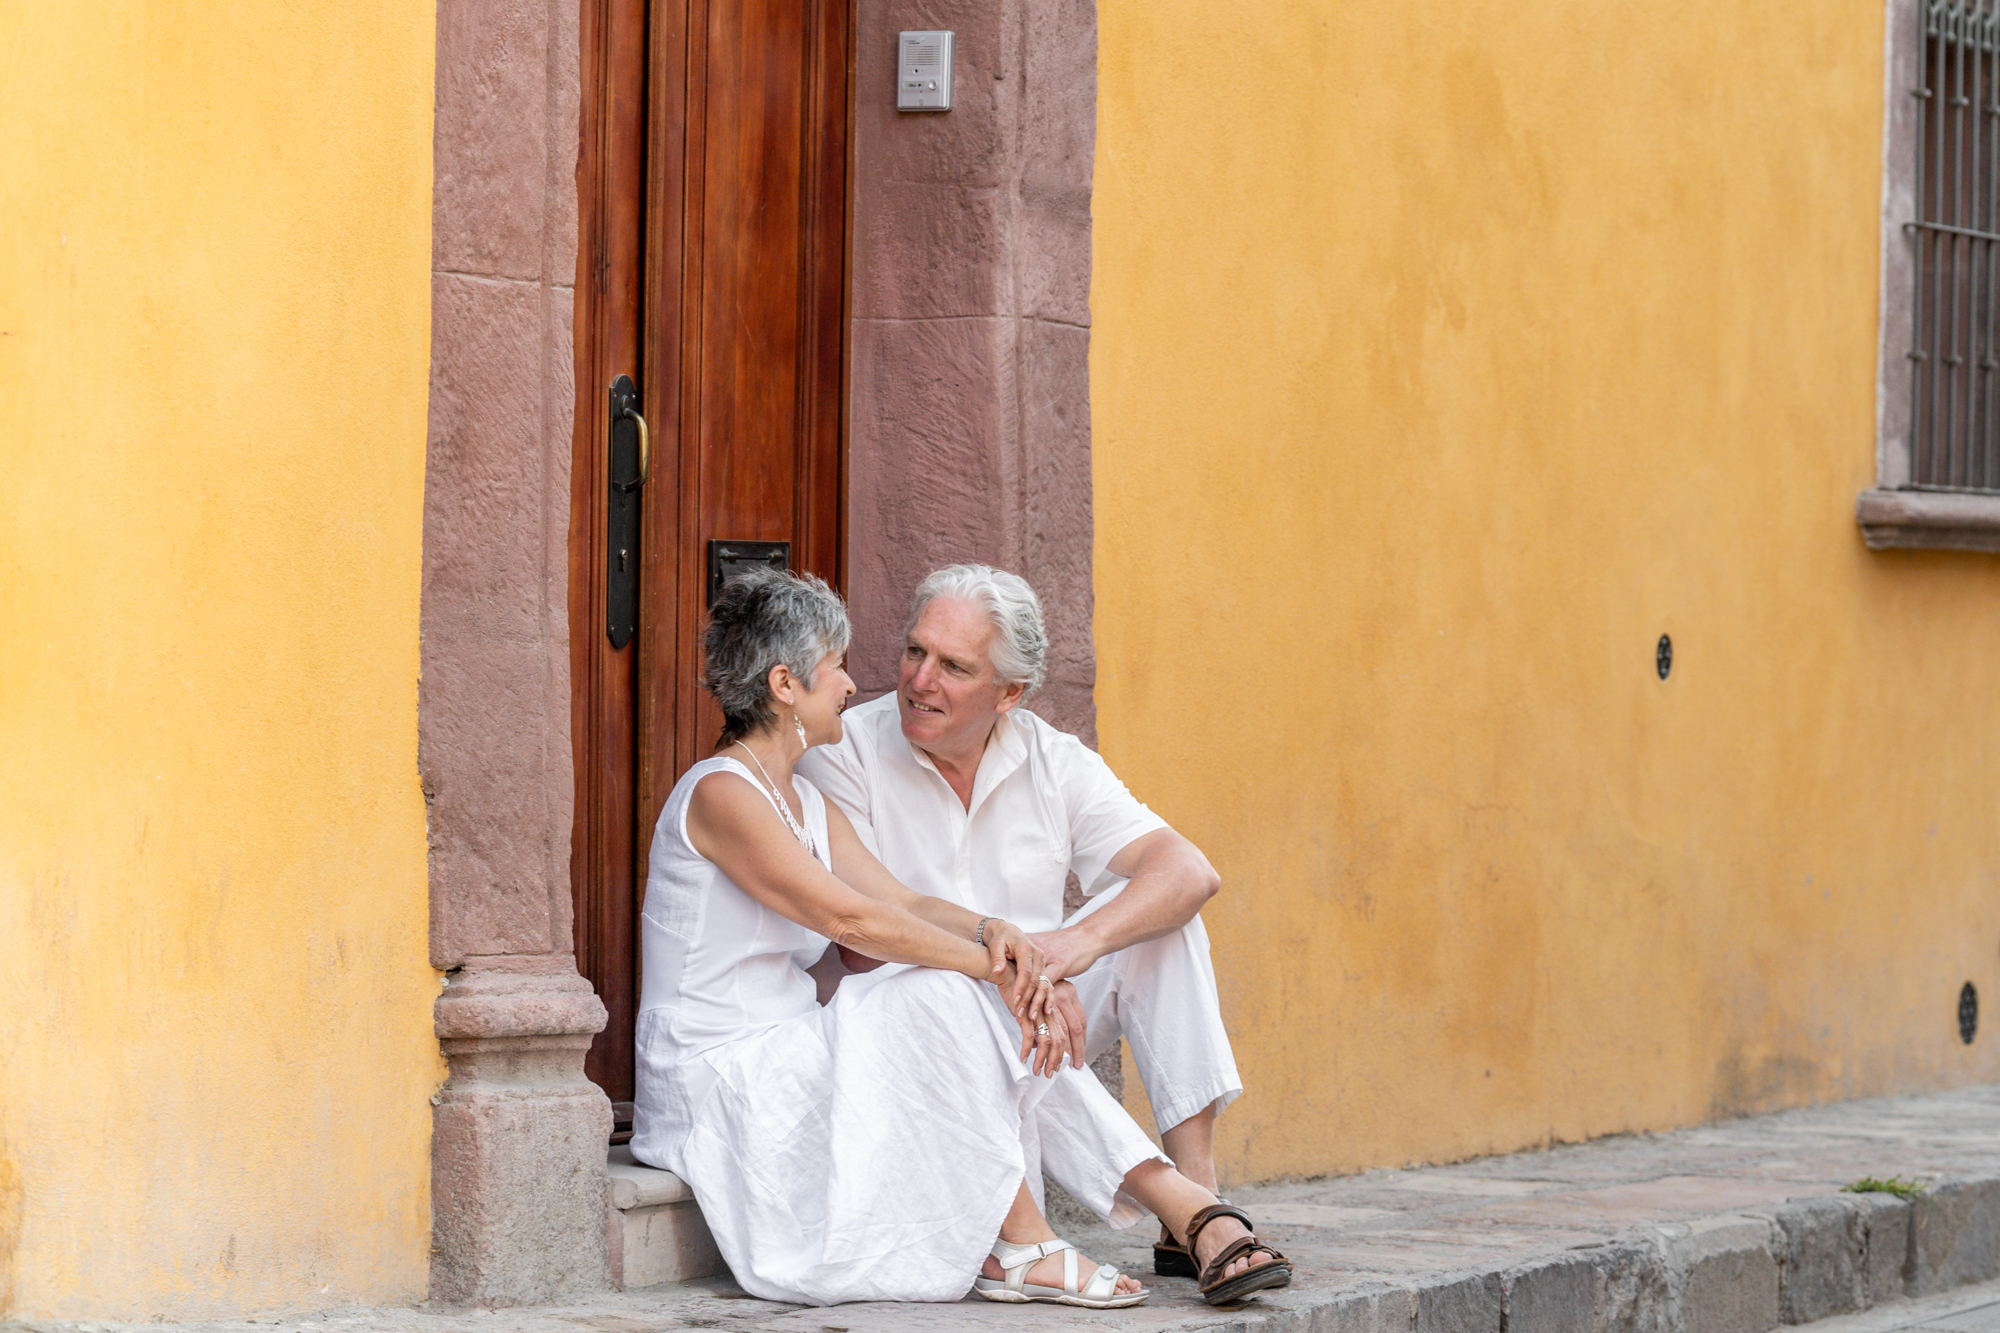 Photoshoot session in San Miguel de Allende with Suzanne and Leo-51.jpg